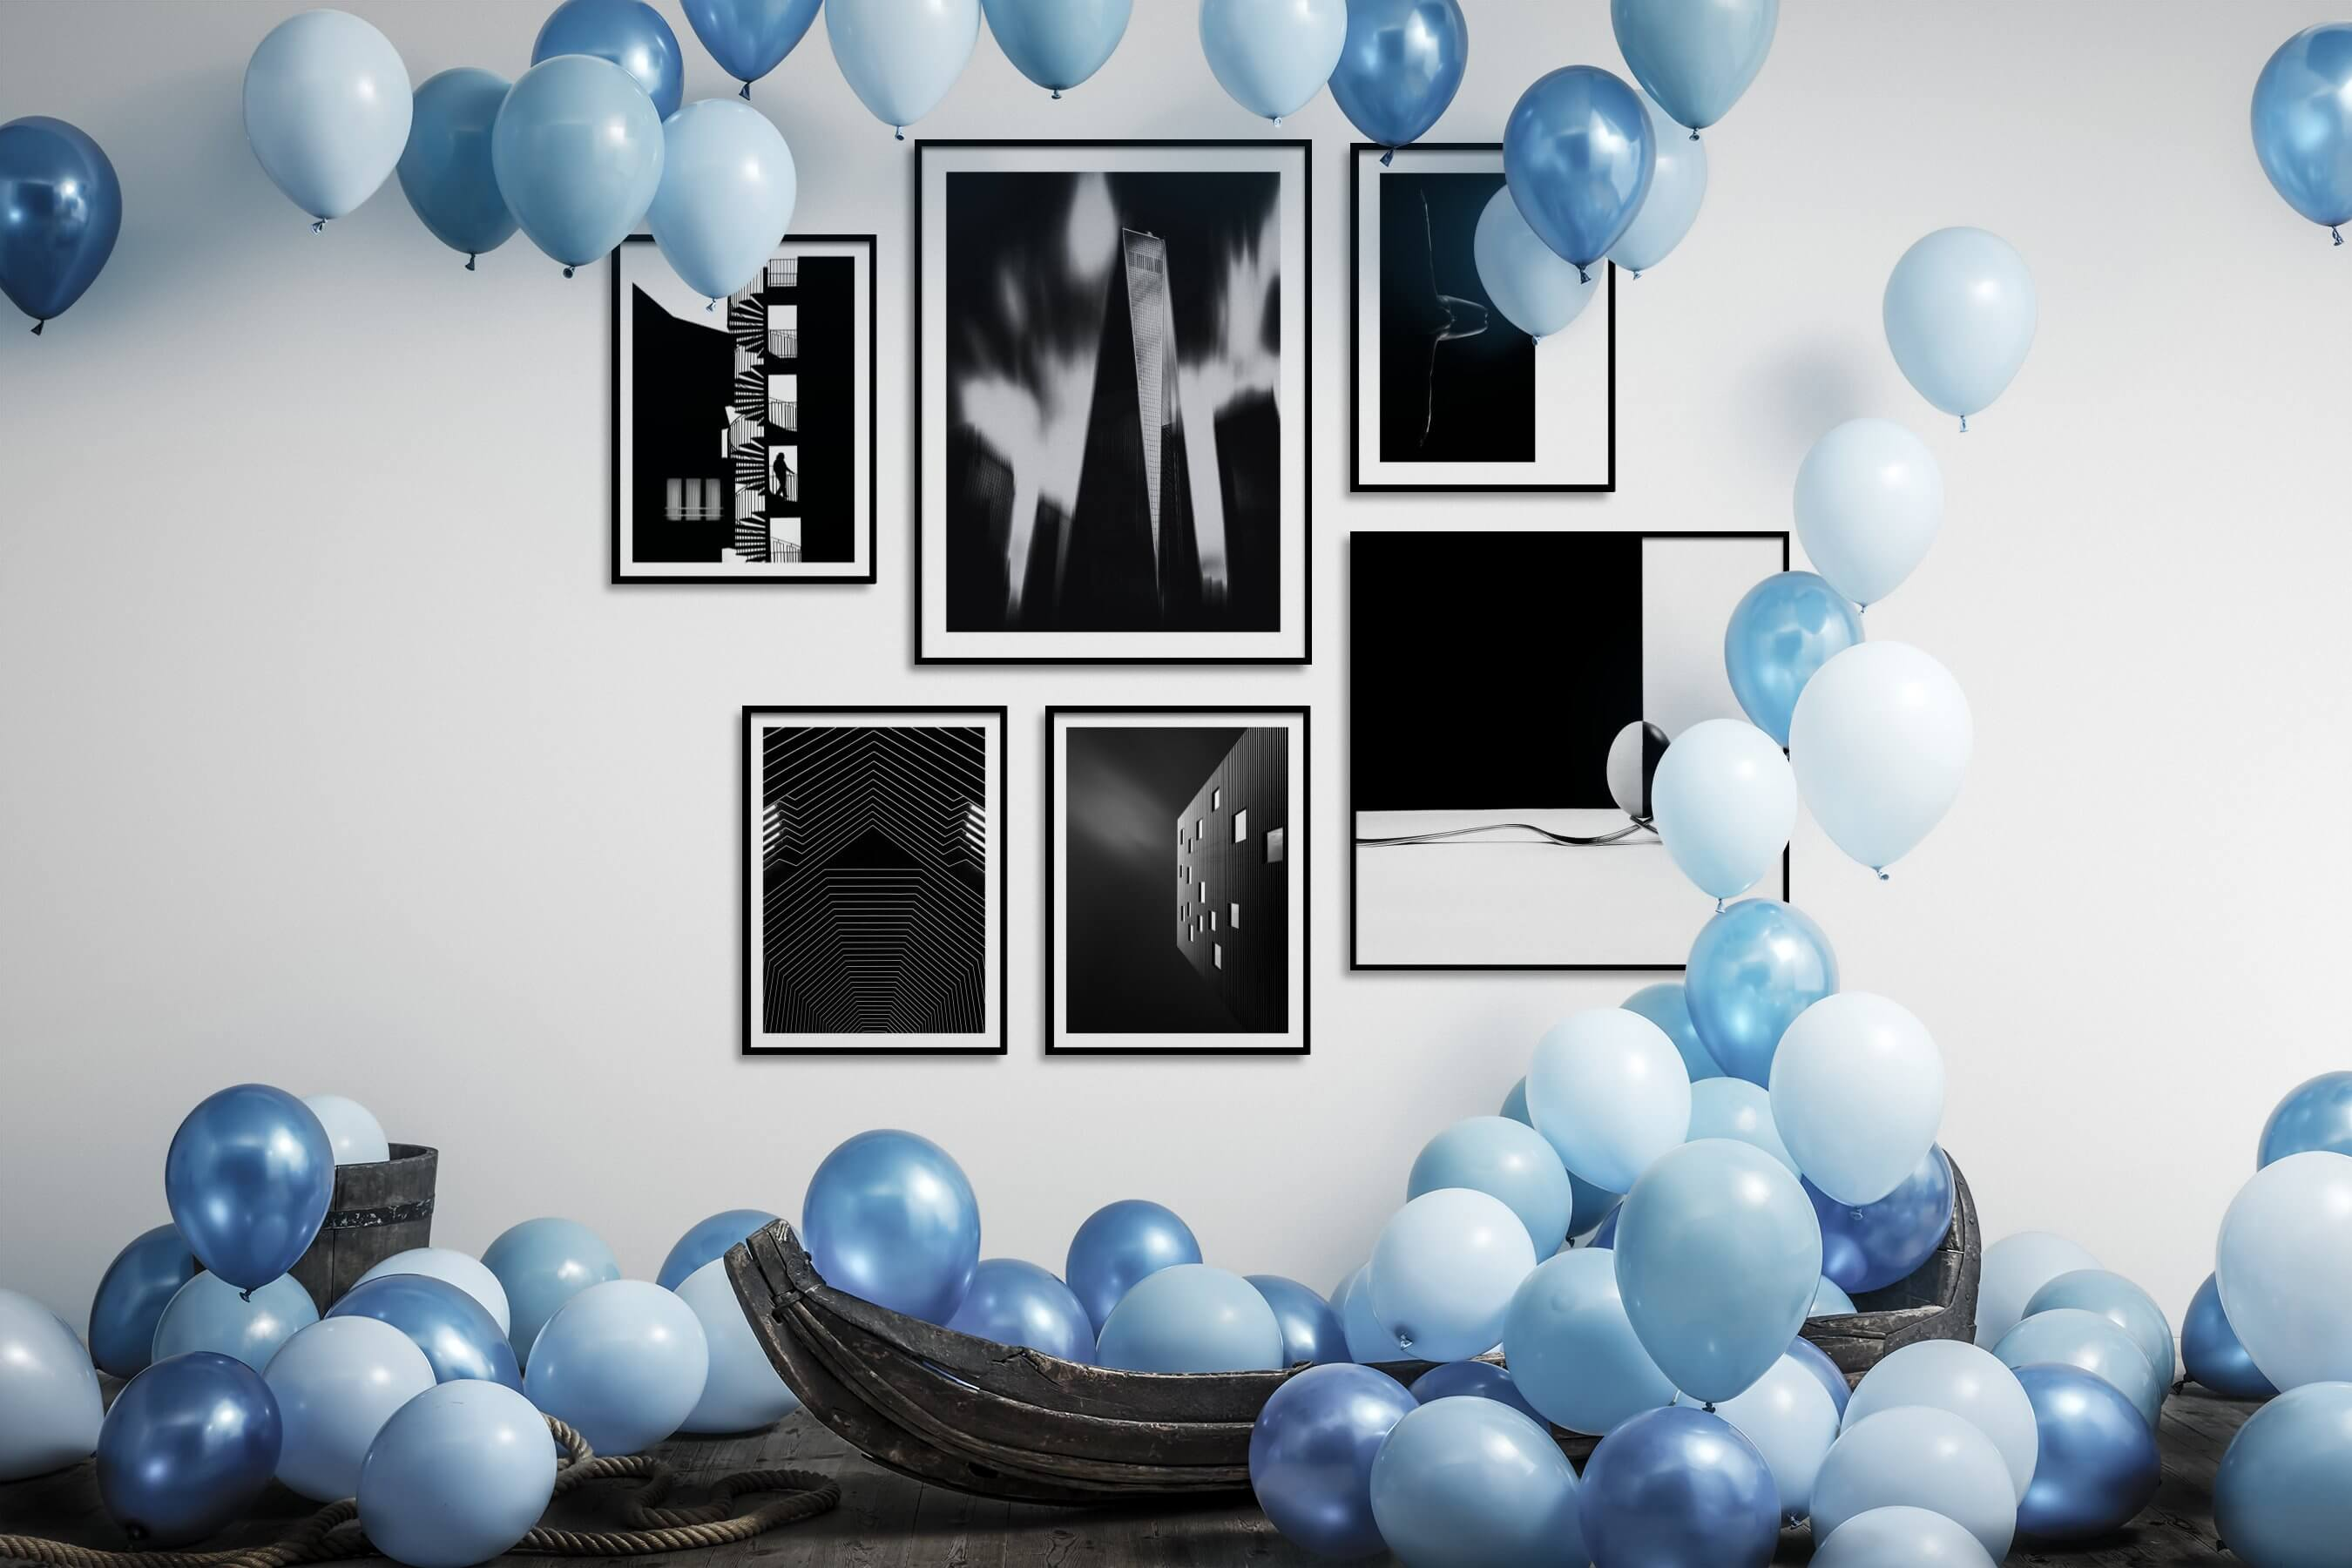 Gallery wall idea with six framed pictures arranged on a wall depicting Black & White, For the Moderate, City Life, For the Maximalist, For the Minimalist, and Fashion & Beauty